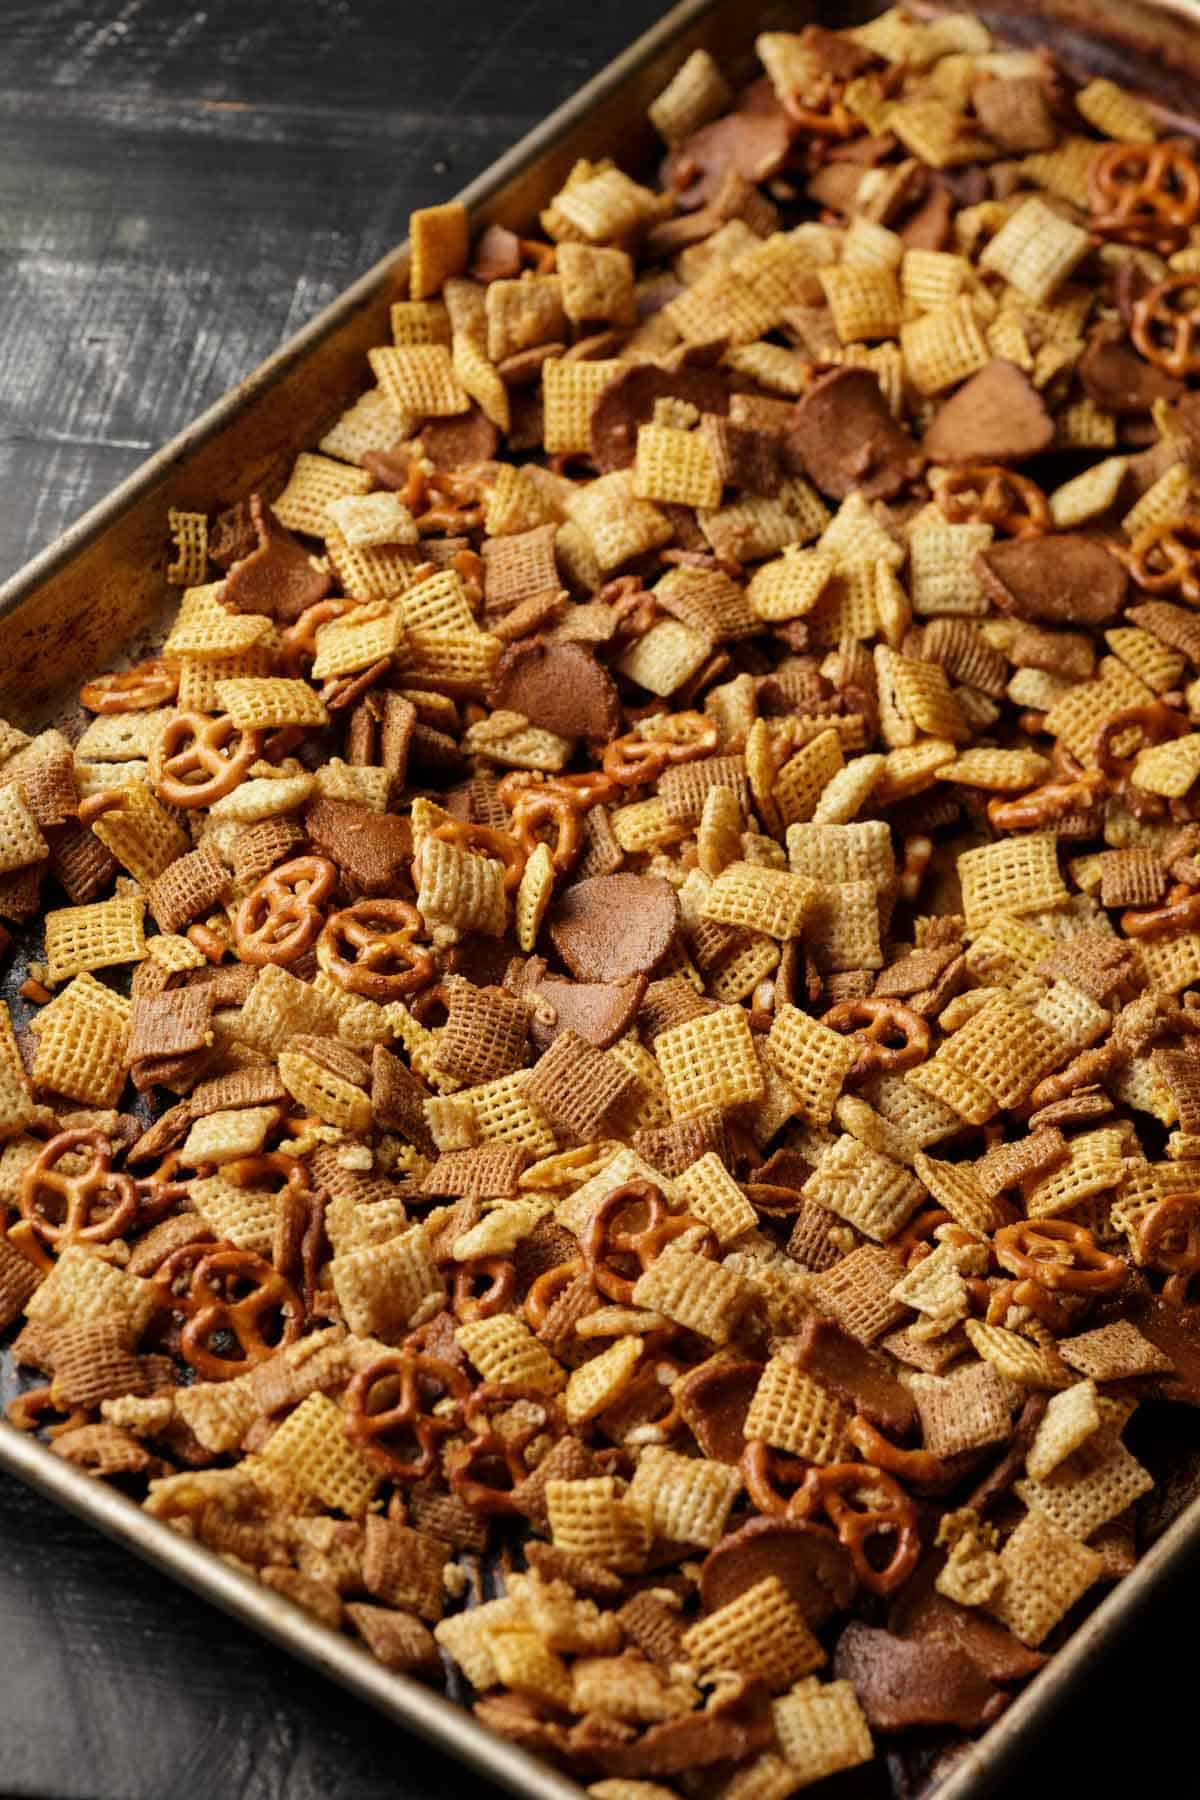 Homemade Chex mix spread out on a rimmed baking sheet.